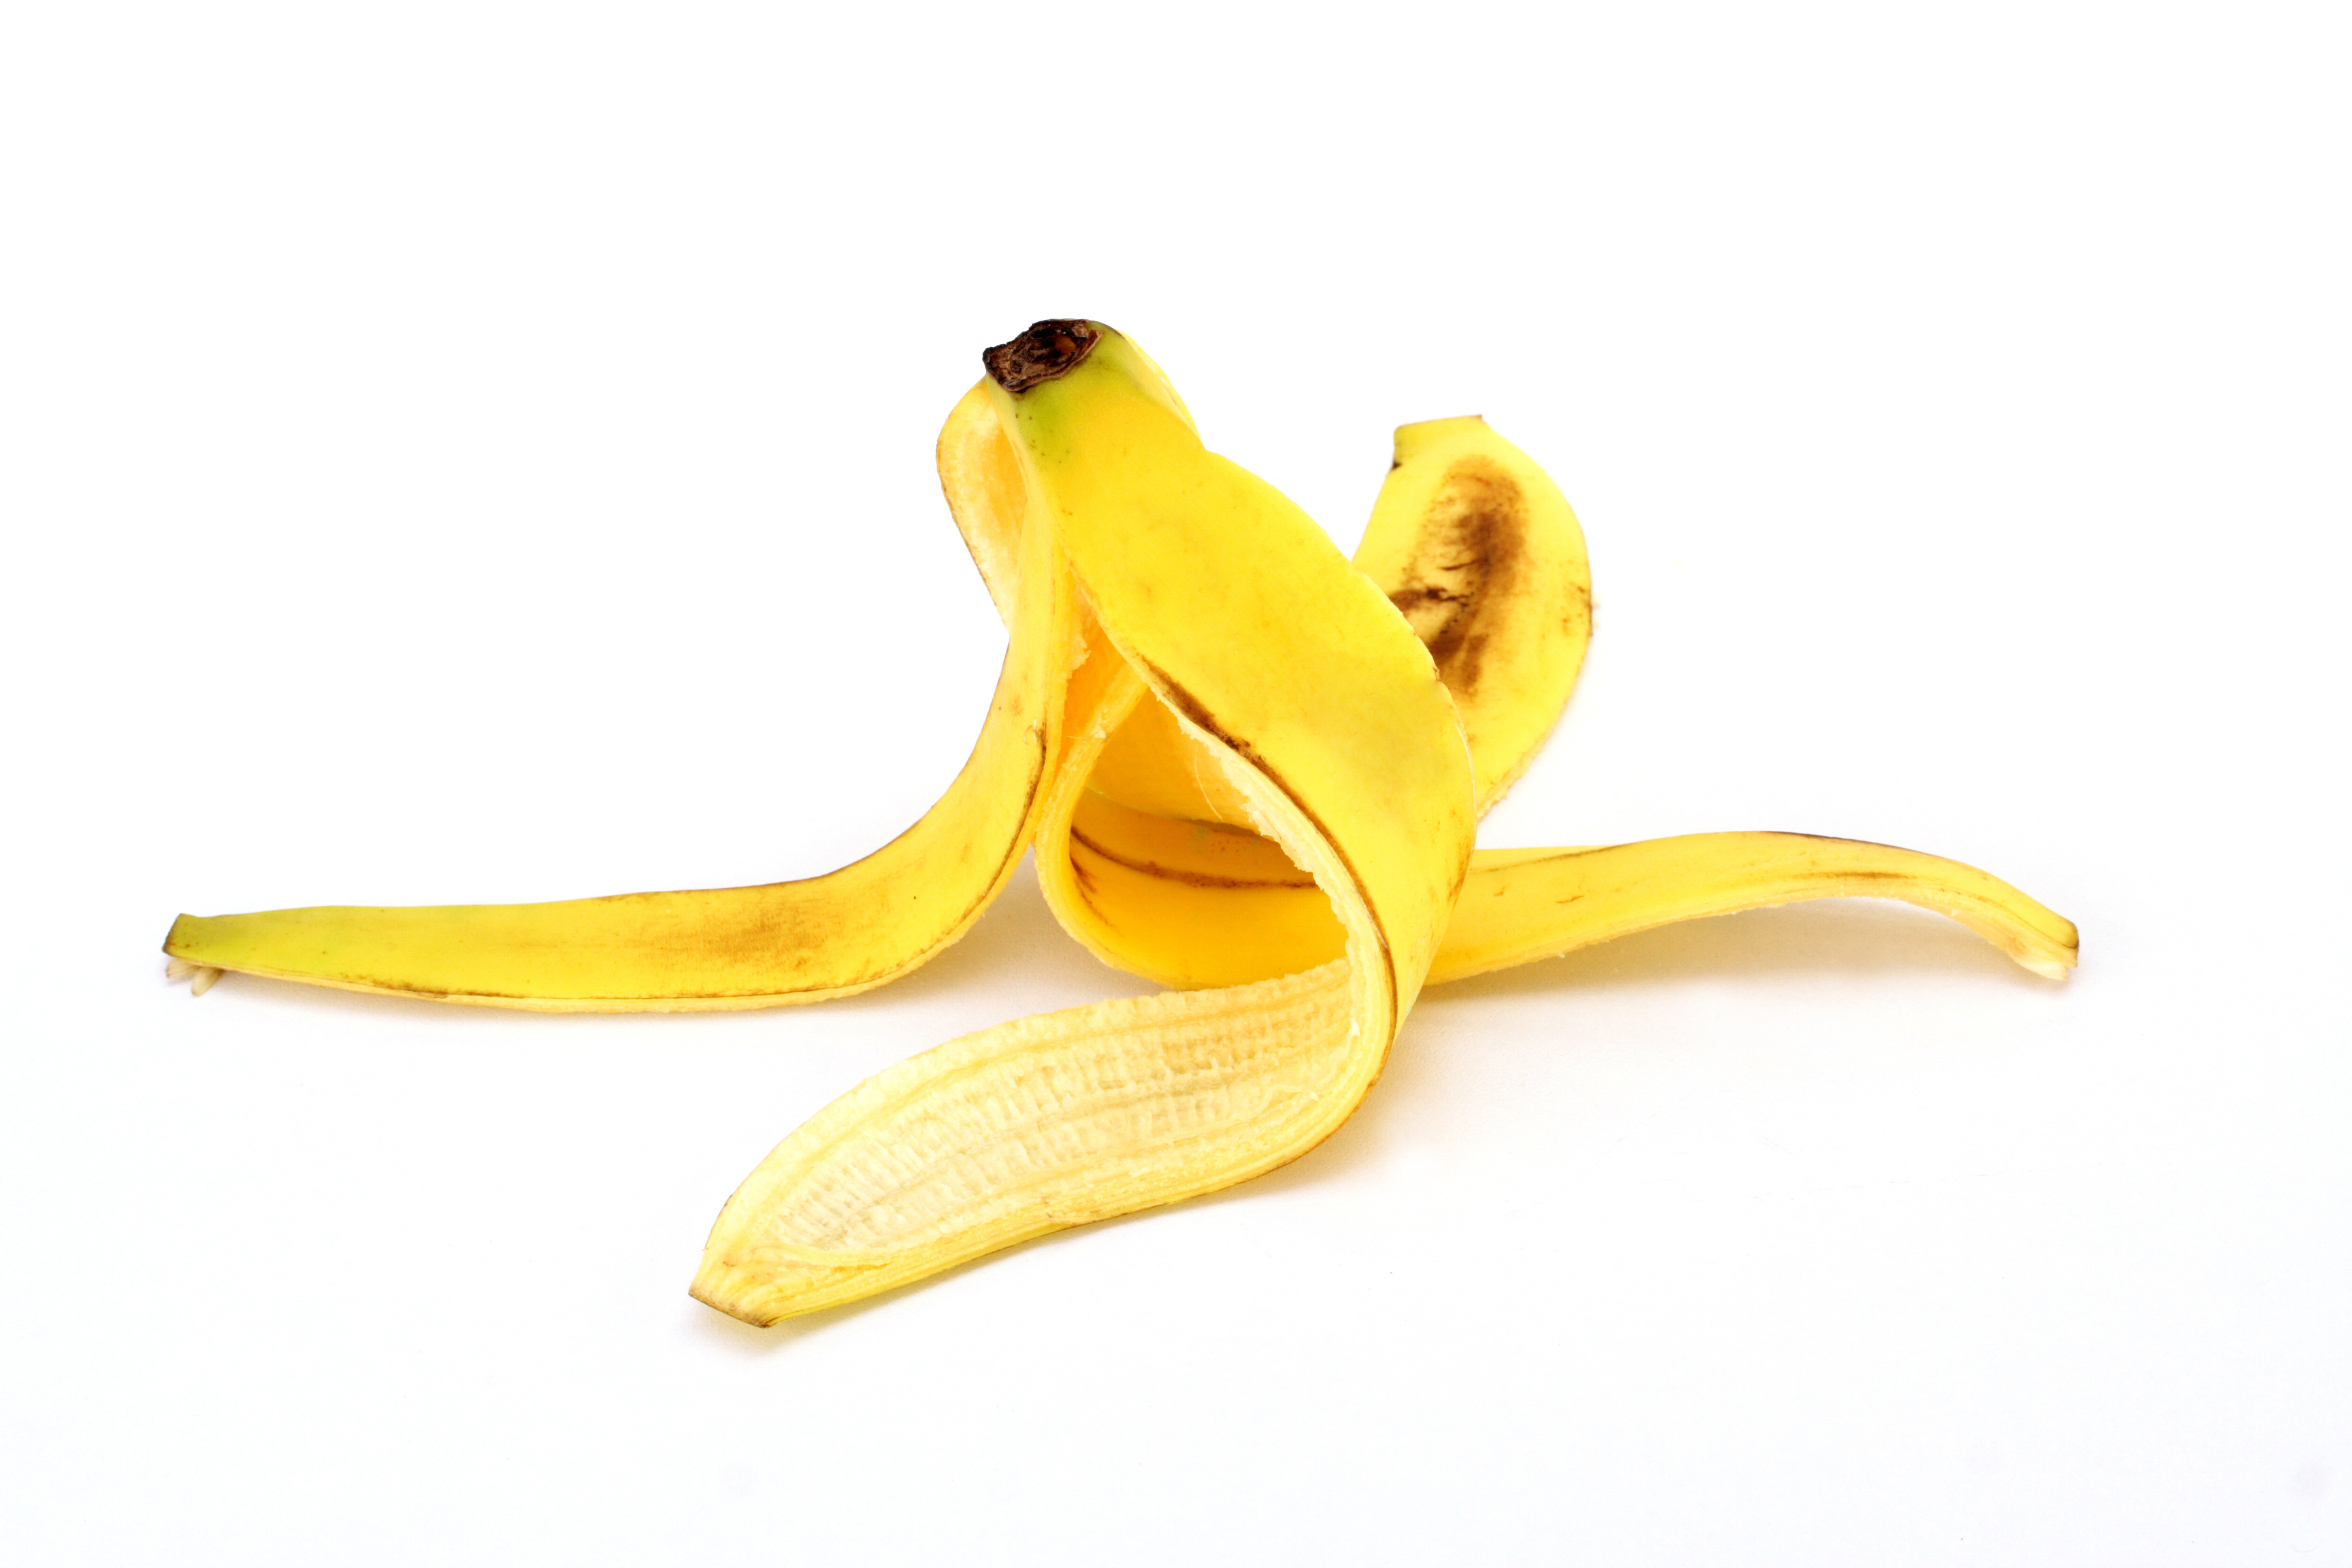 The Surprising Beauty Benefits of Banana Peels